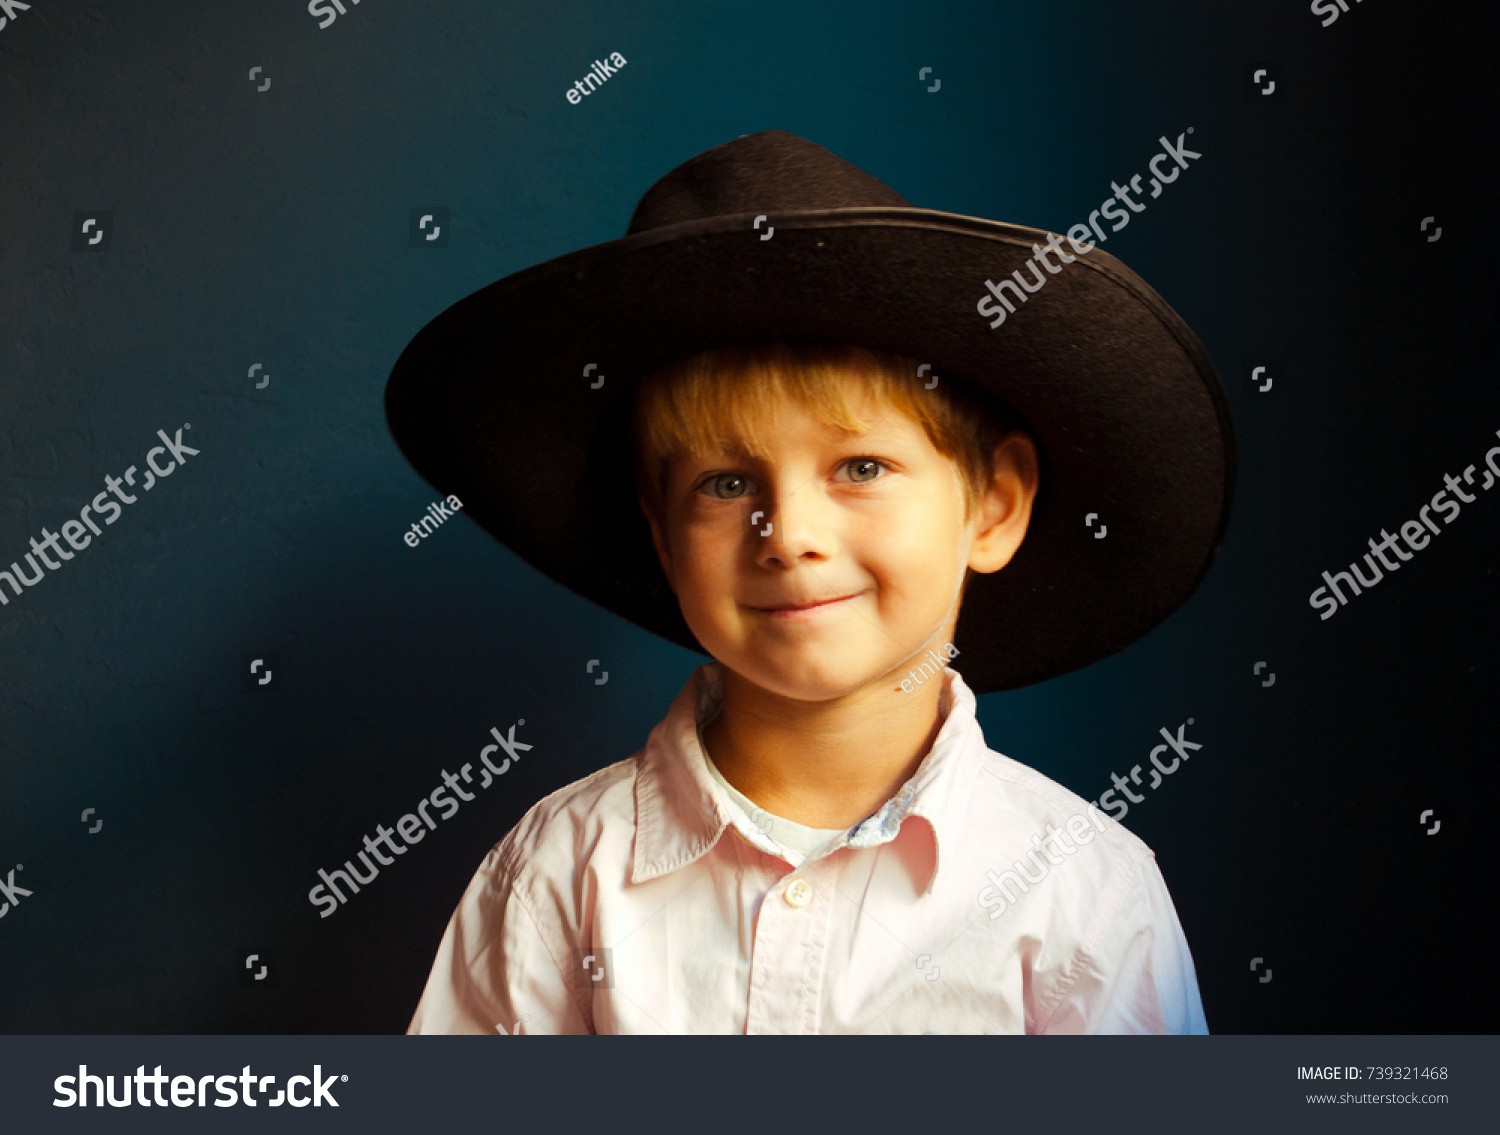 6df0cc05654 Portrait of smiling little boy in big black hat and shirt.Happy child.  Space for text.